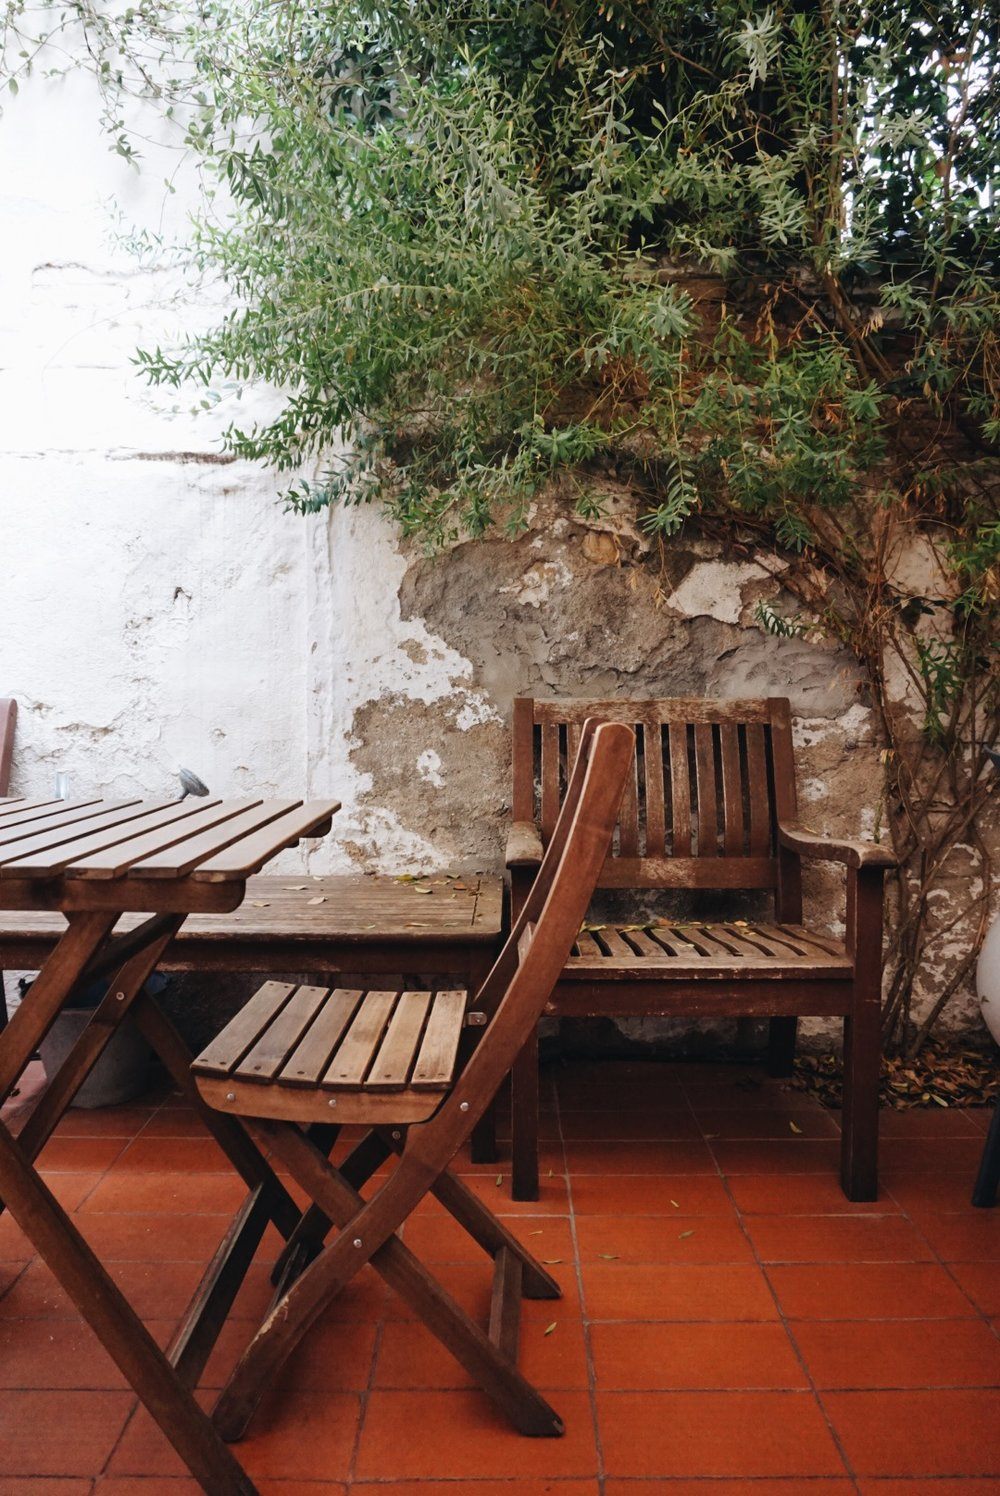 The patio at Mama's Cafe Barcelona